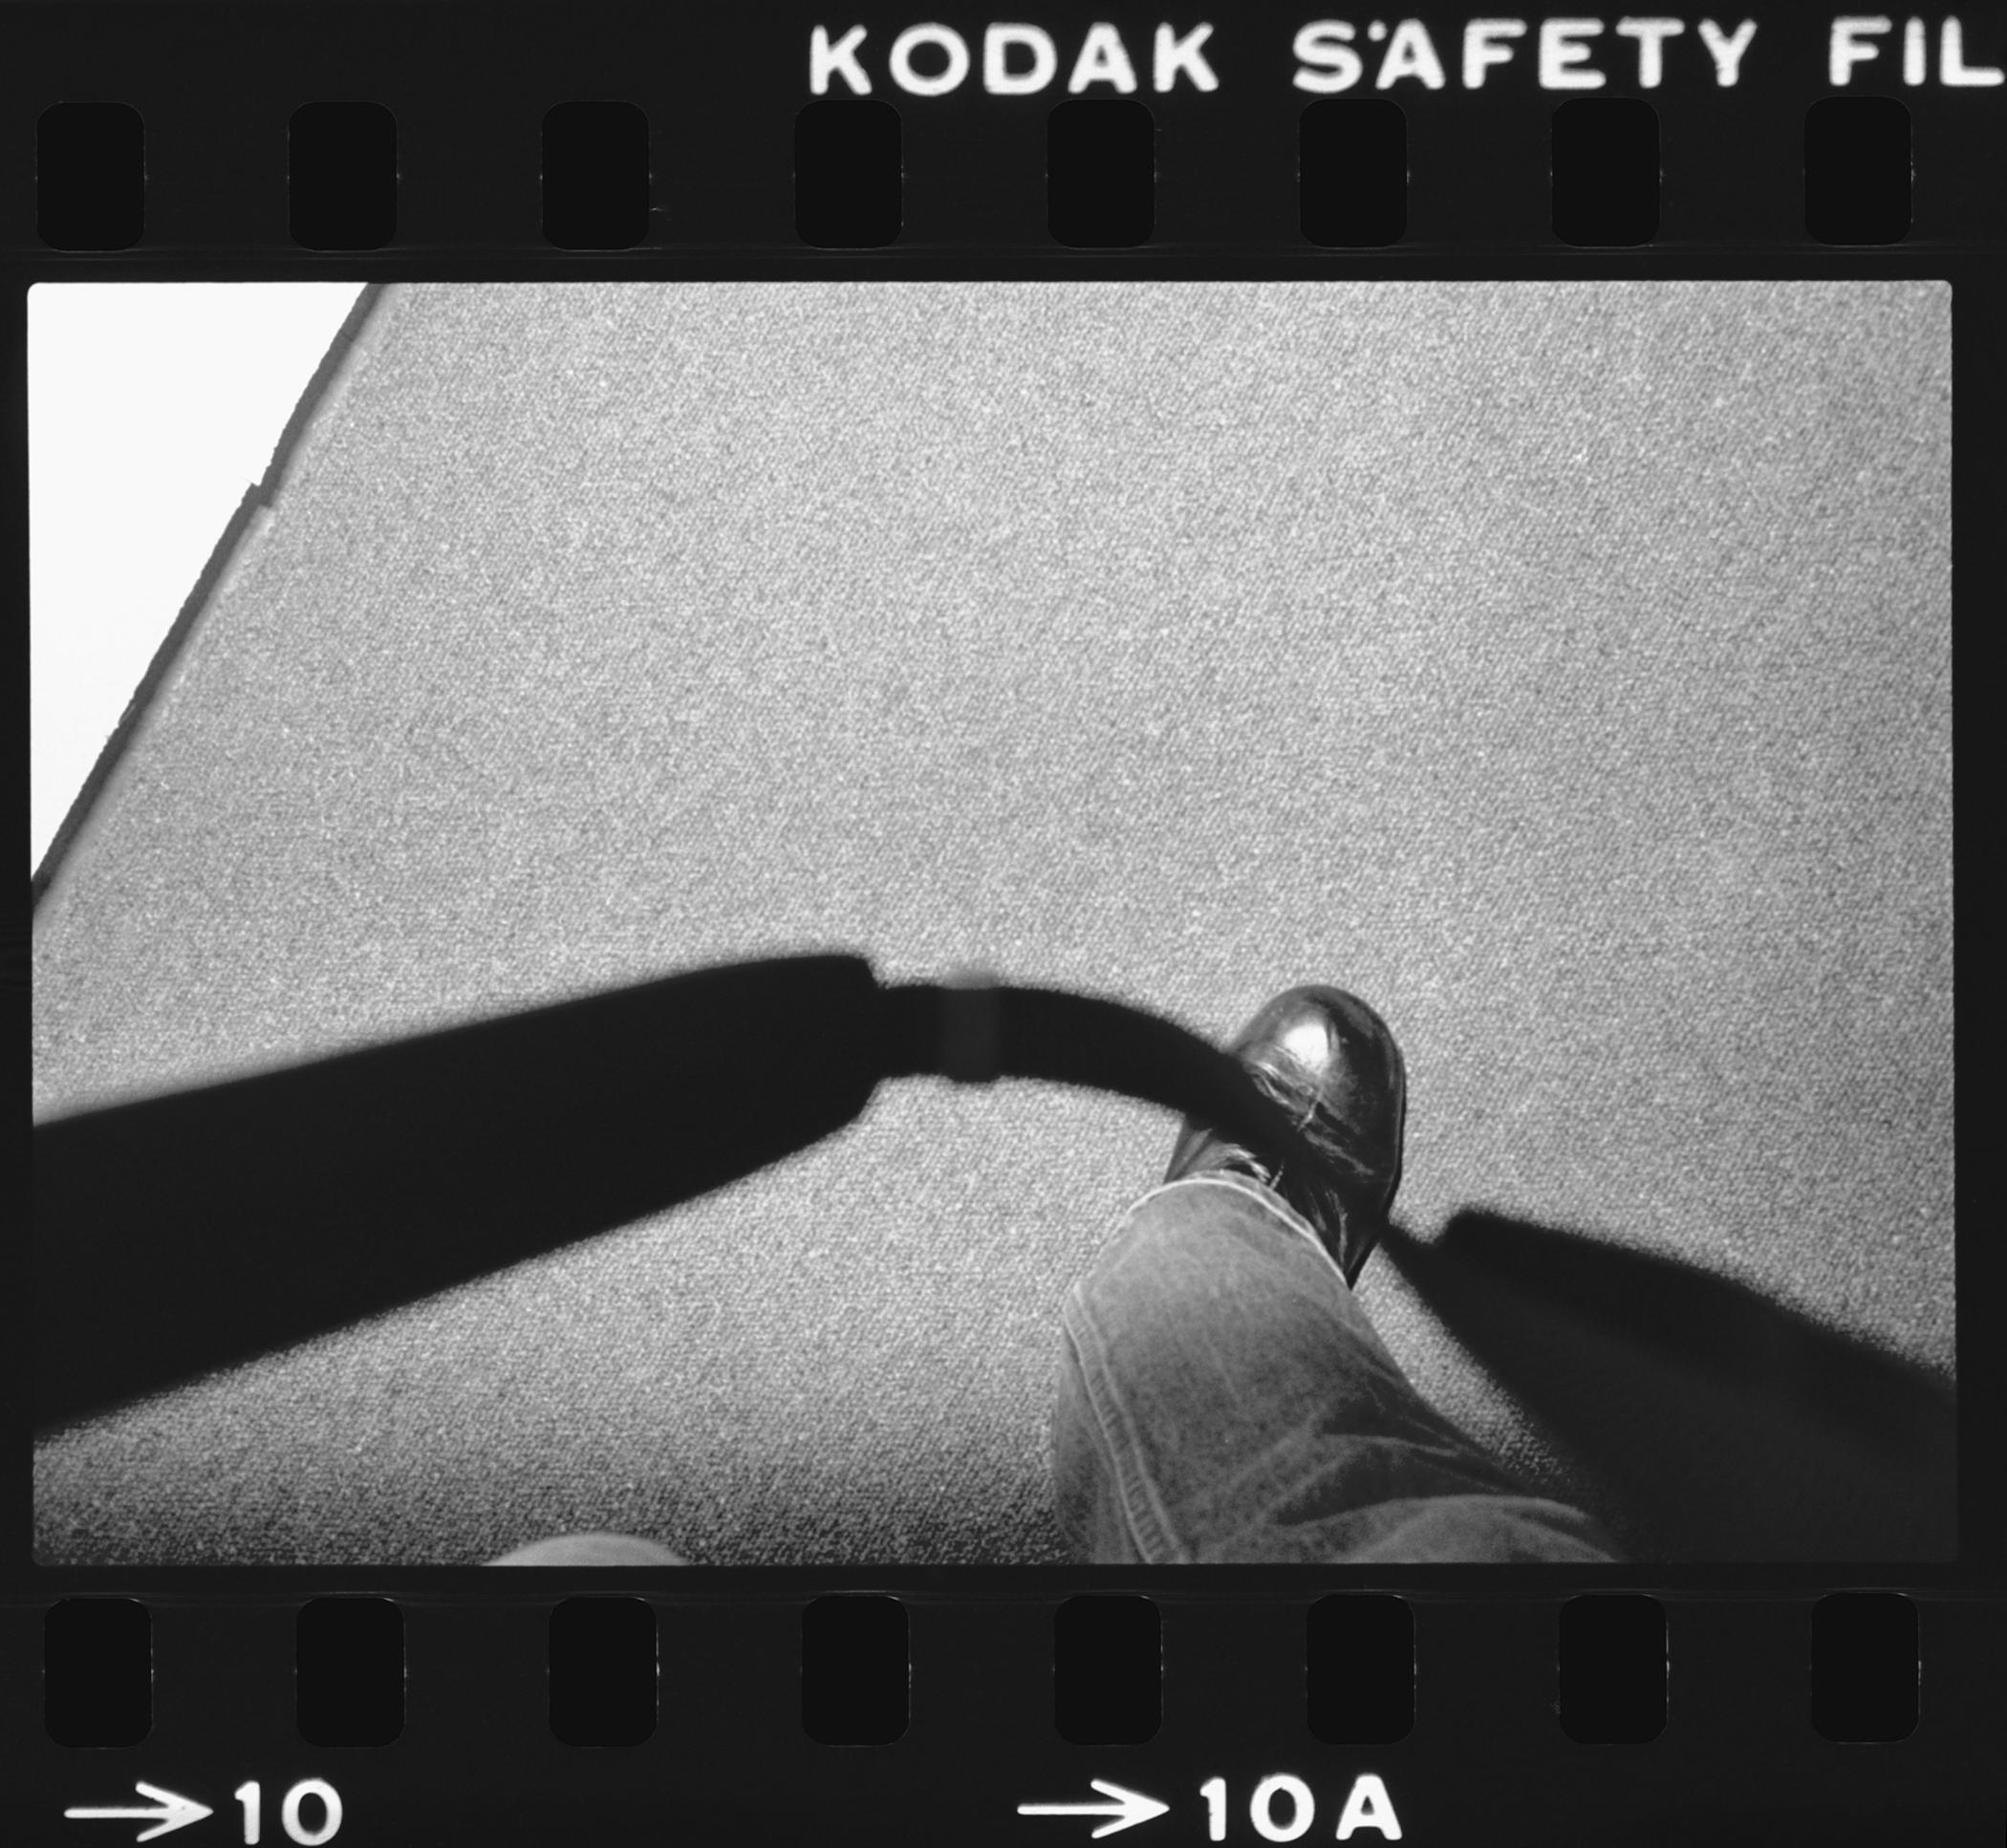 A 35 mm black-and-white film frame depicts a camera strap looping down toward the lower part of a right leg clad in denim as the person raises their foot to take a step.